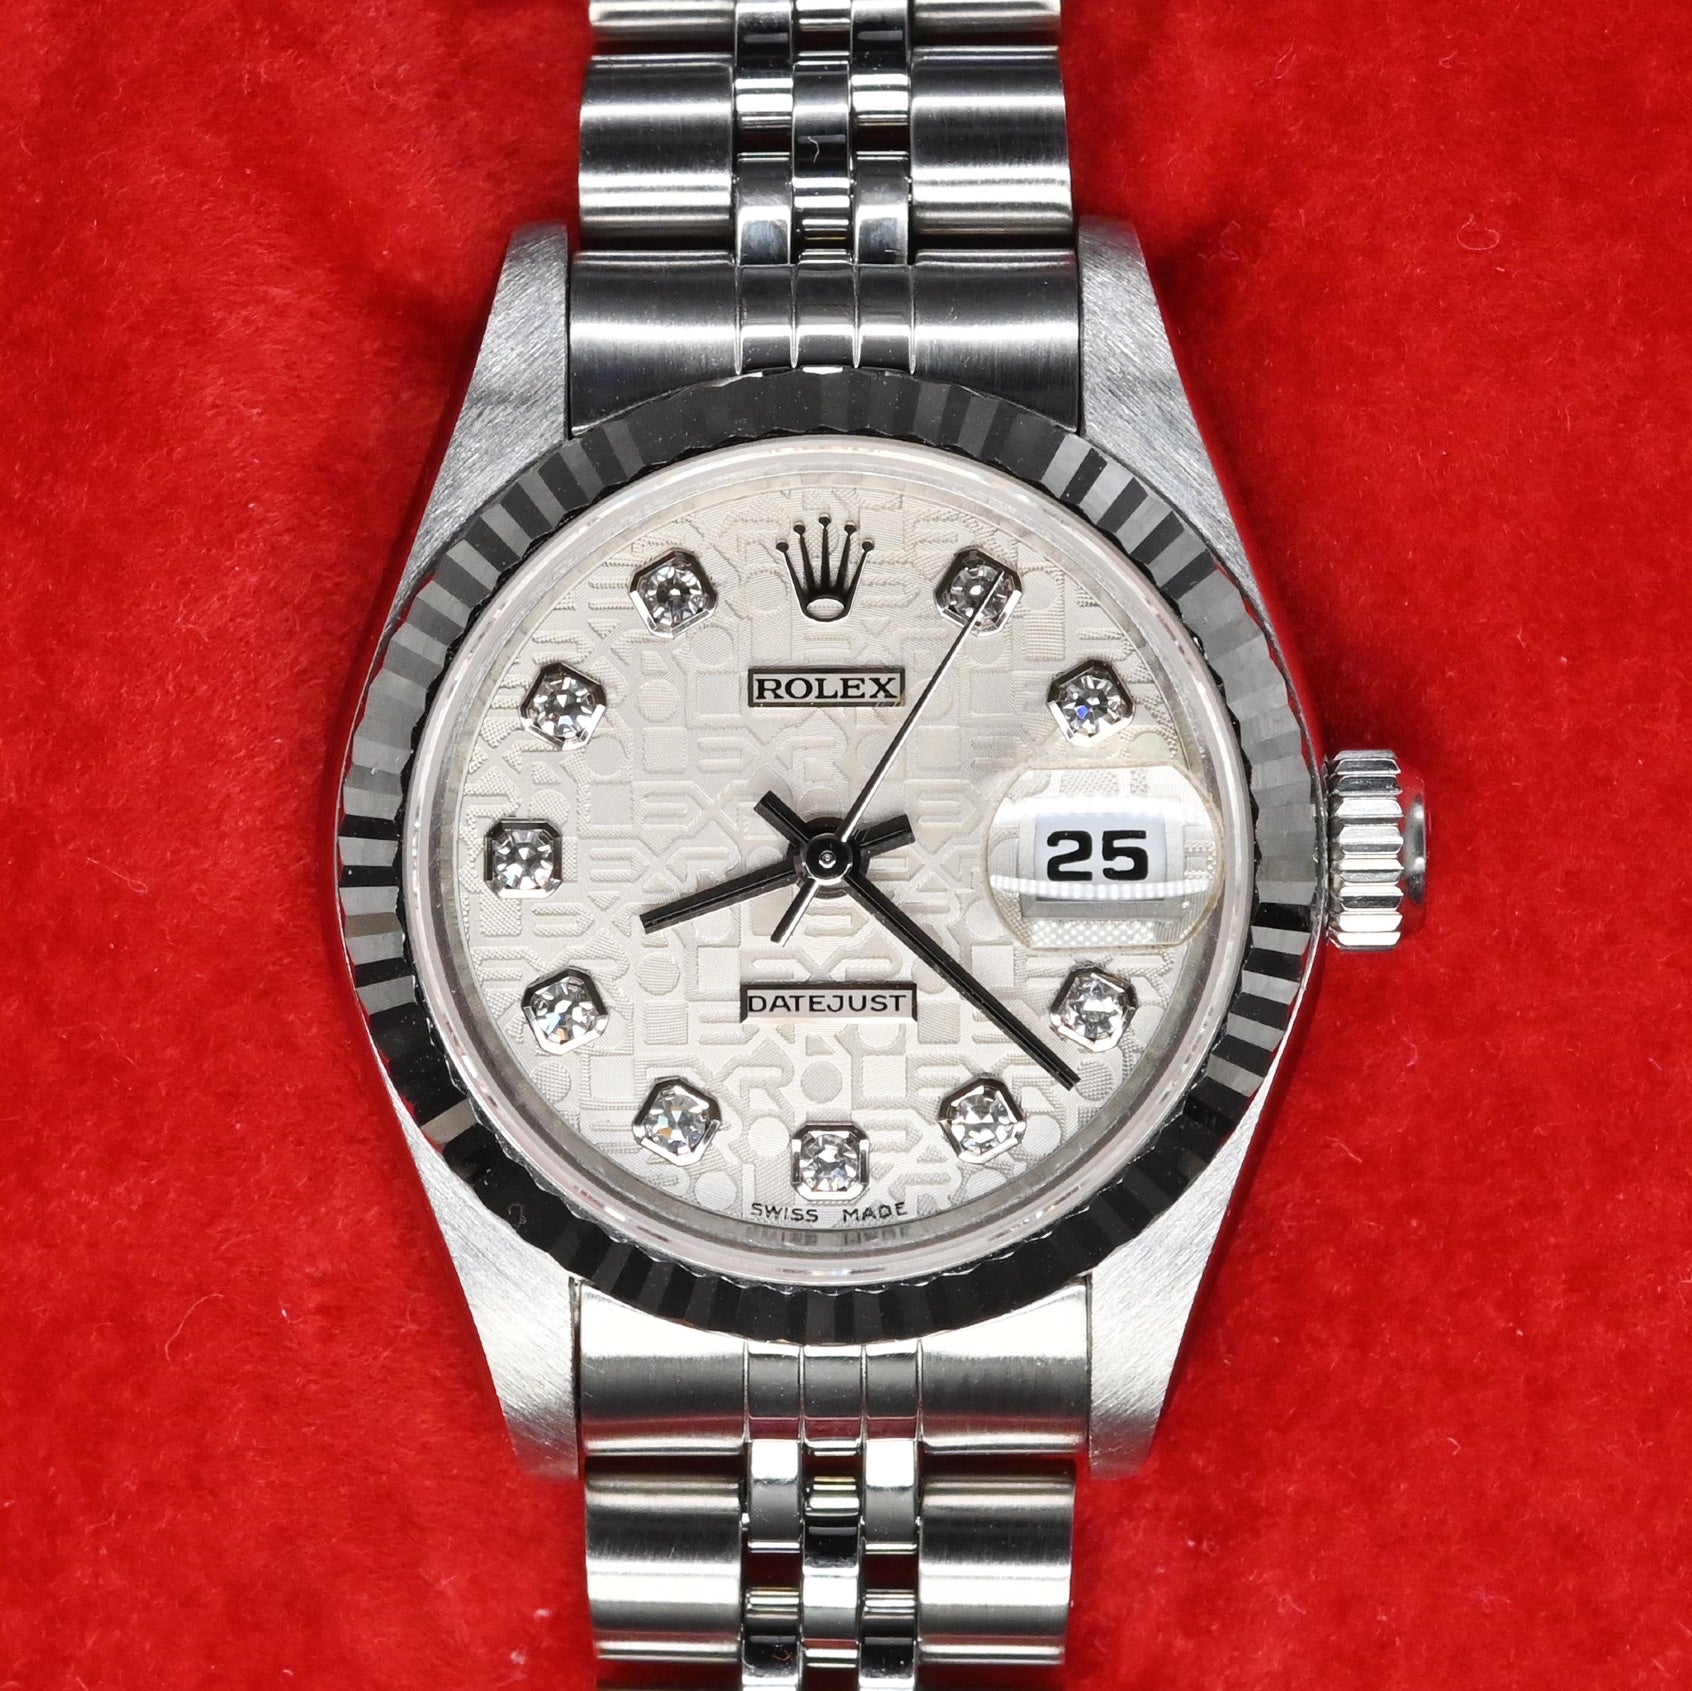 [Pre-Owned Watch] Rolex Datejust 26mm 69174 Silver Jubilee Dial with Diamonds (Jubilee Bracelet) (Out of Production) (400 Hong Kong Authorized Dealer Stock)